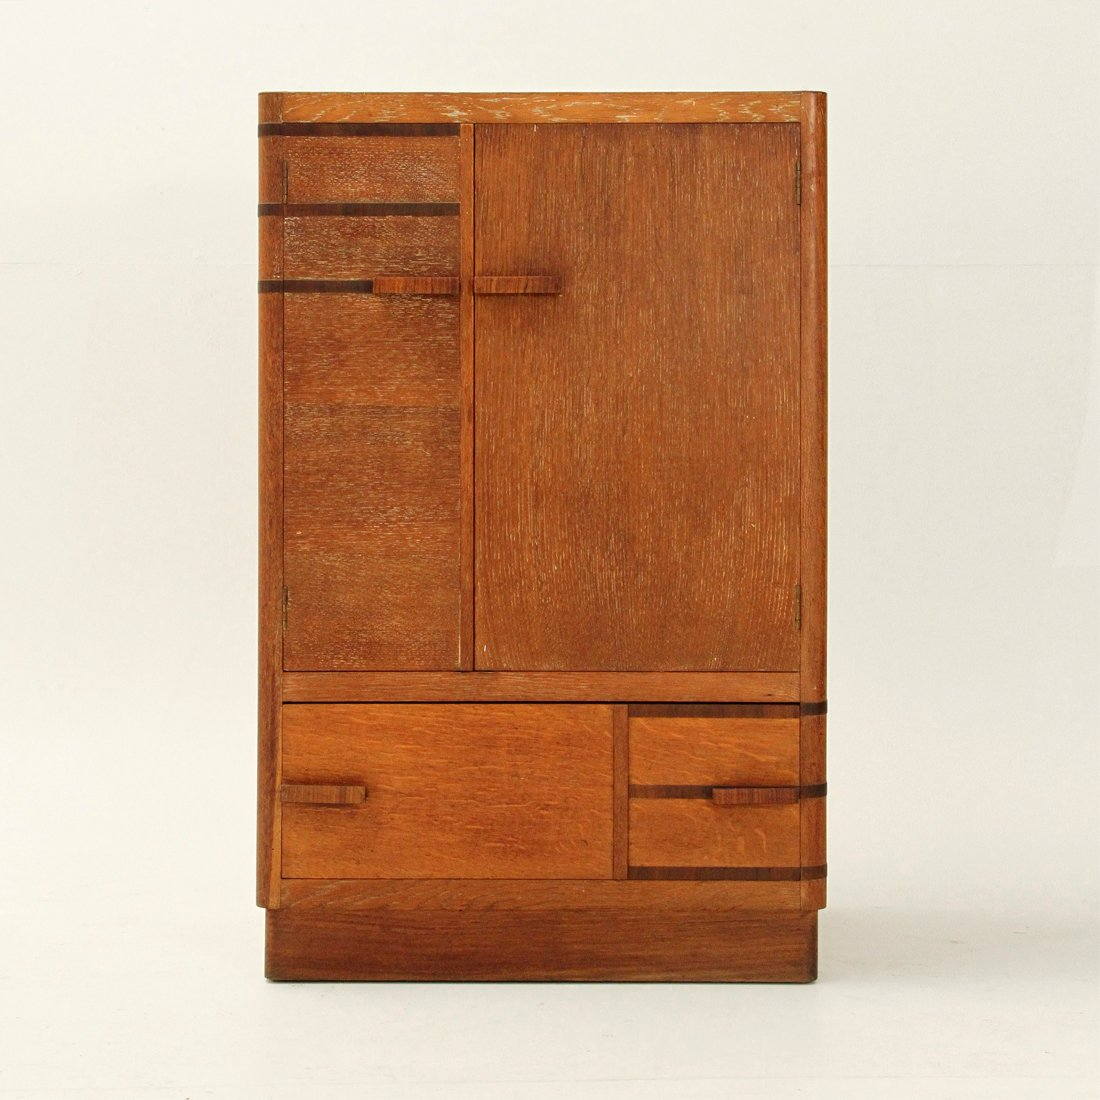 armoire rationnaliste italie 1940s en vente sur pamono. Black Bedroom Furniture Sets. Home Design Ideas